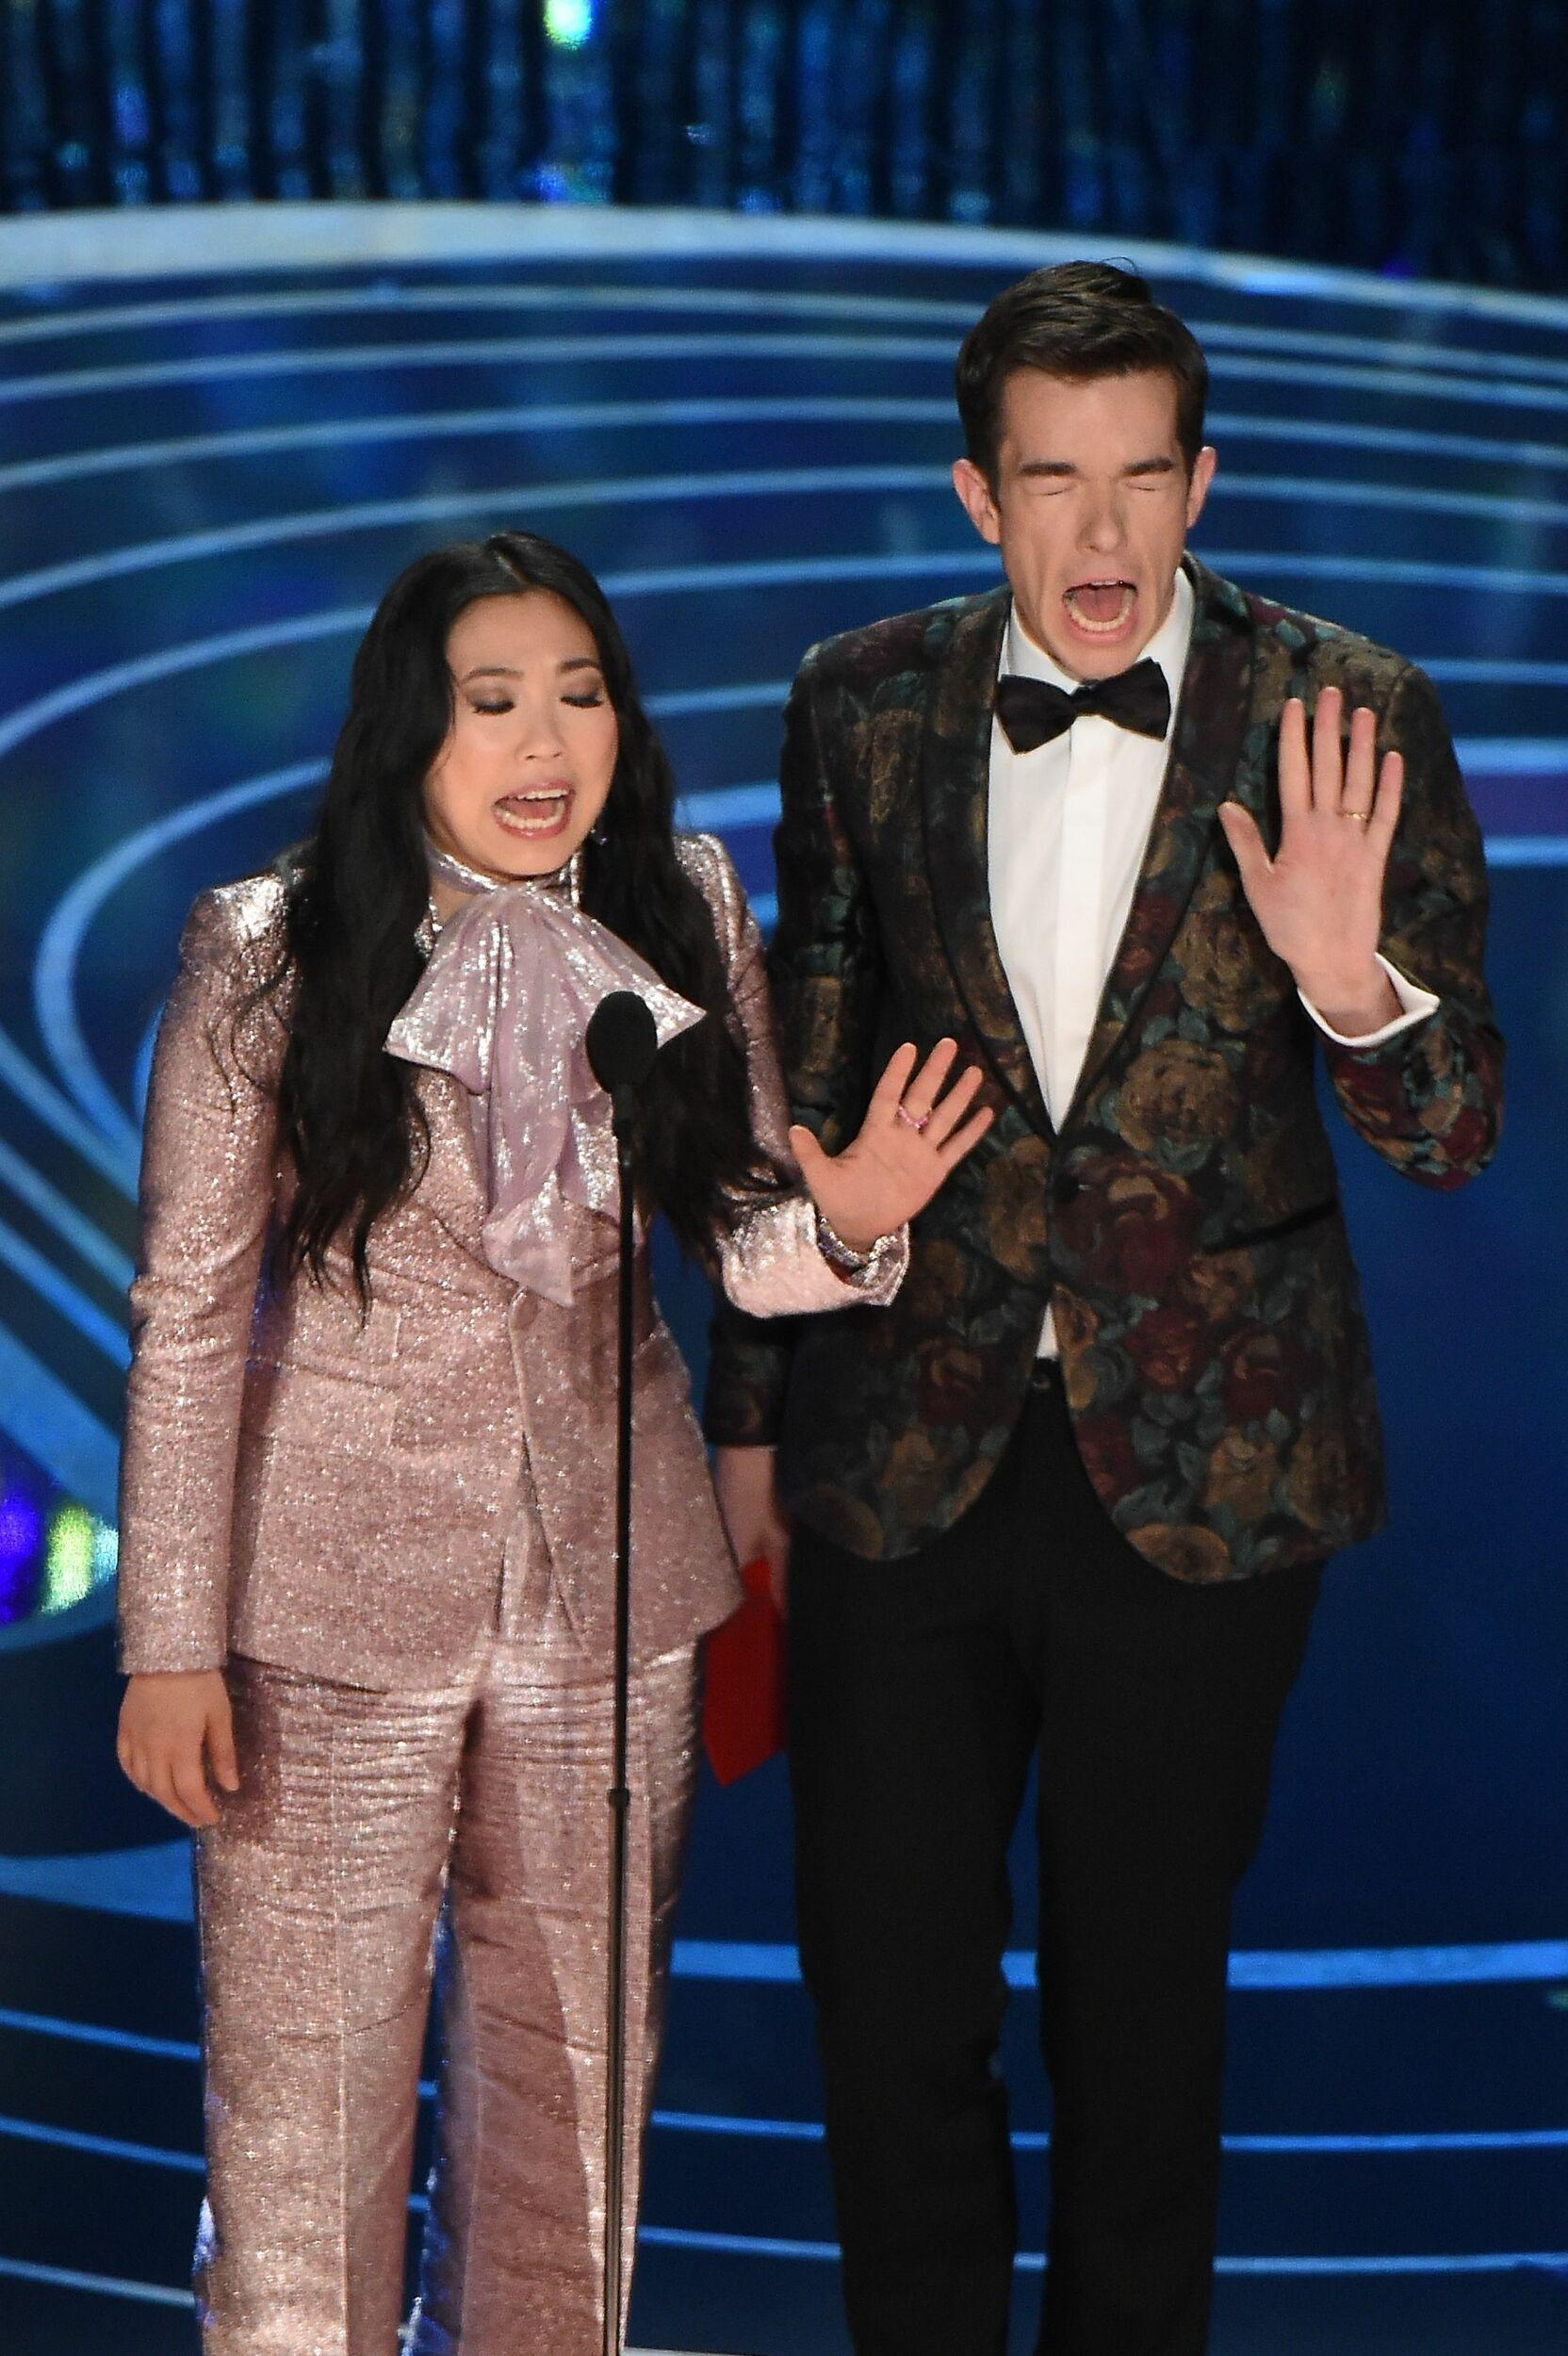 Actress and rapper Awkwafina and John Mullaney present an award during the 91st Annual Academy Awards at the Dolby Theatre in Hollywood, California on February 24, 2019. (Photo by VALERIE MACON / AFP)        (Photo credit should read VALERIE MACON/AFP/Getty Images)